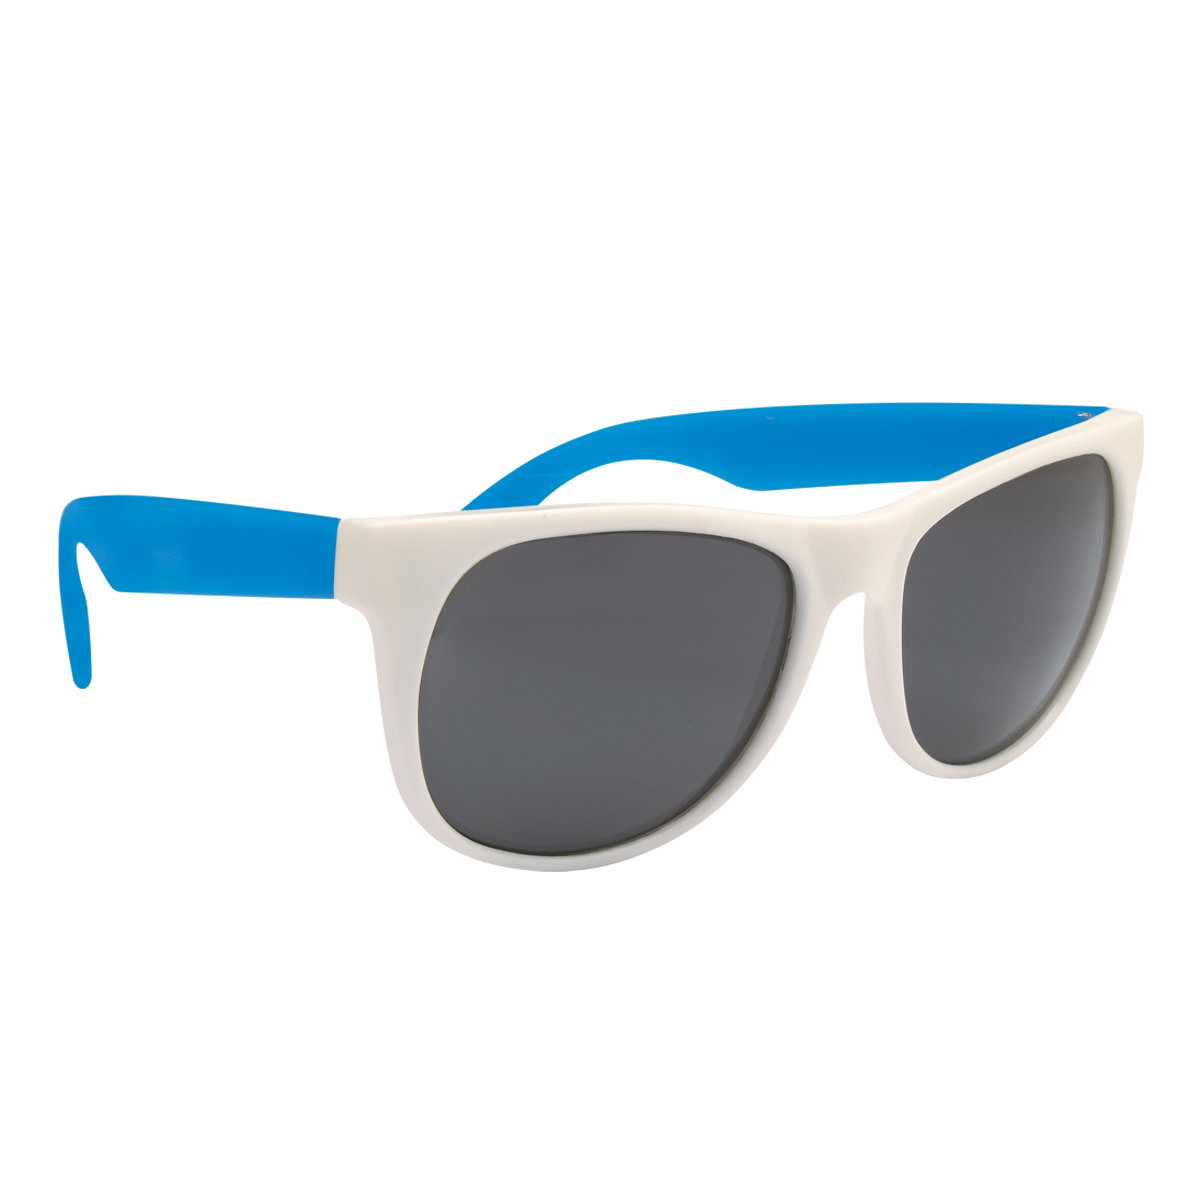 Black Frame with Blue Temples Rubberized Sunglasses